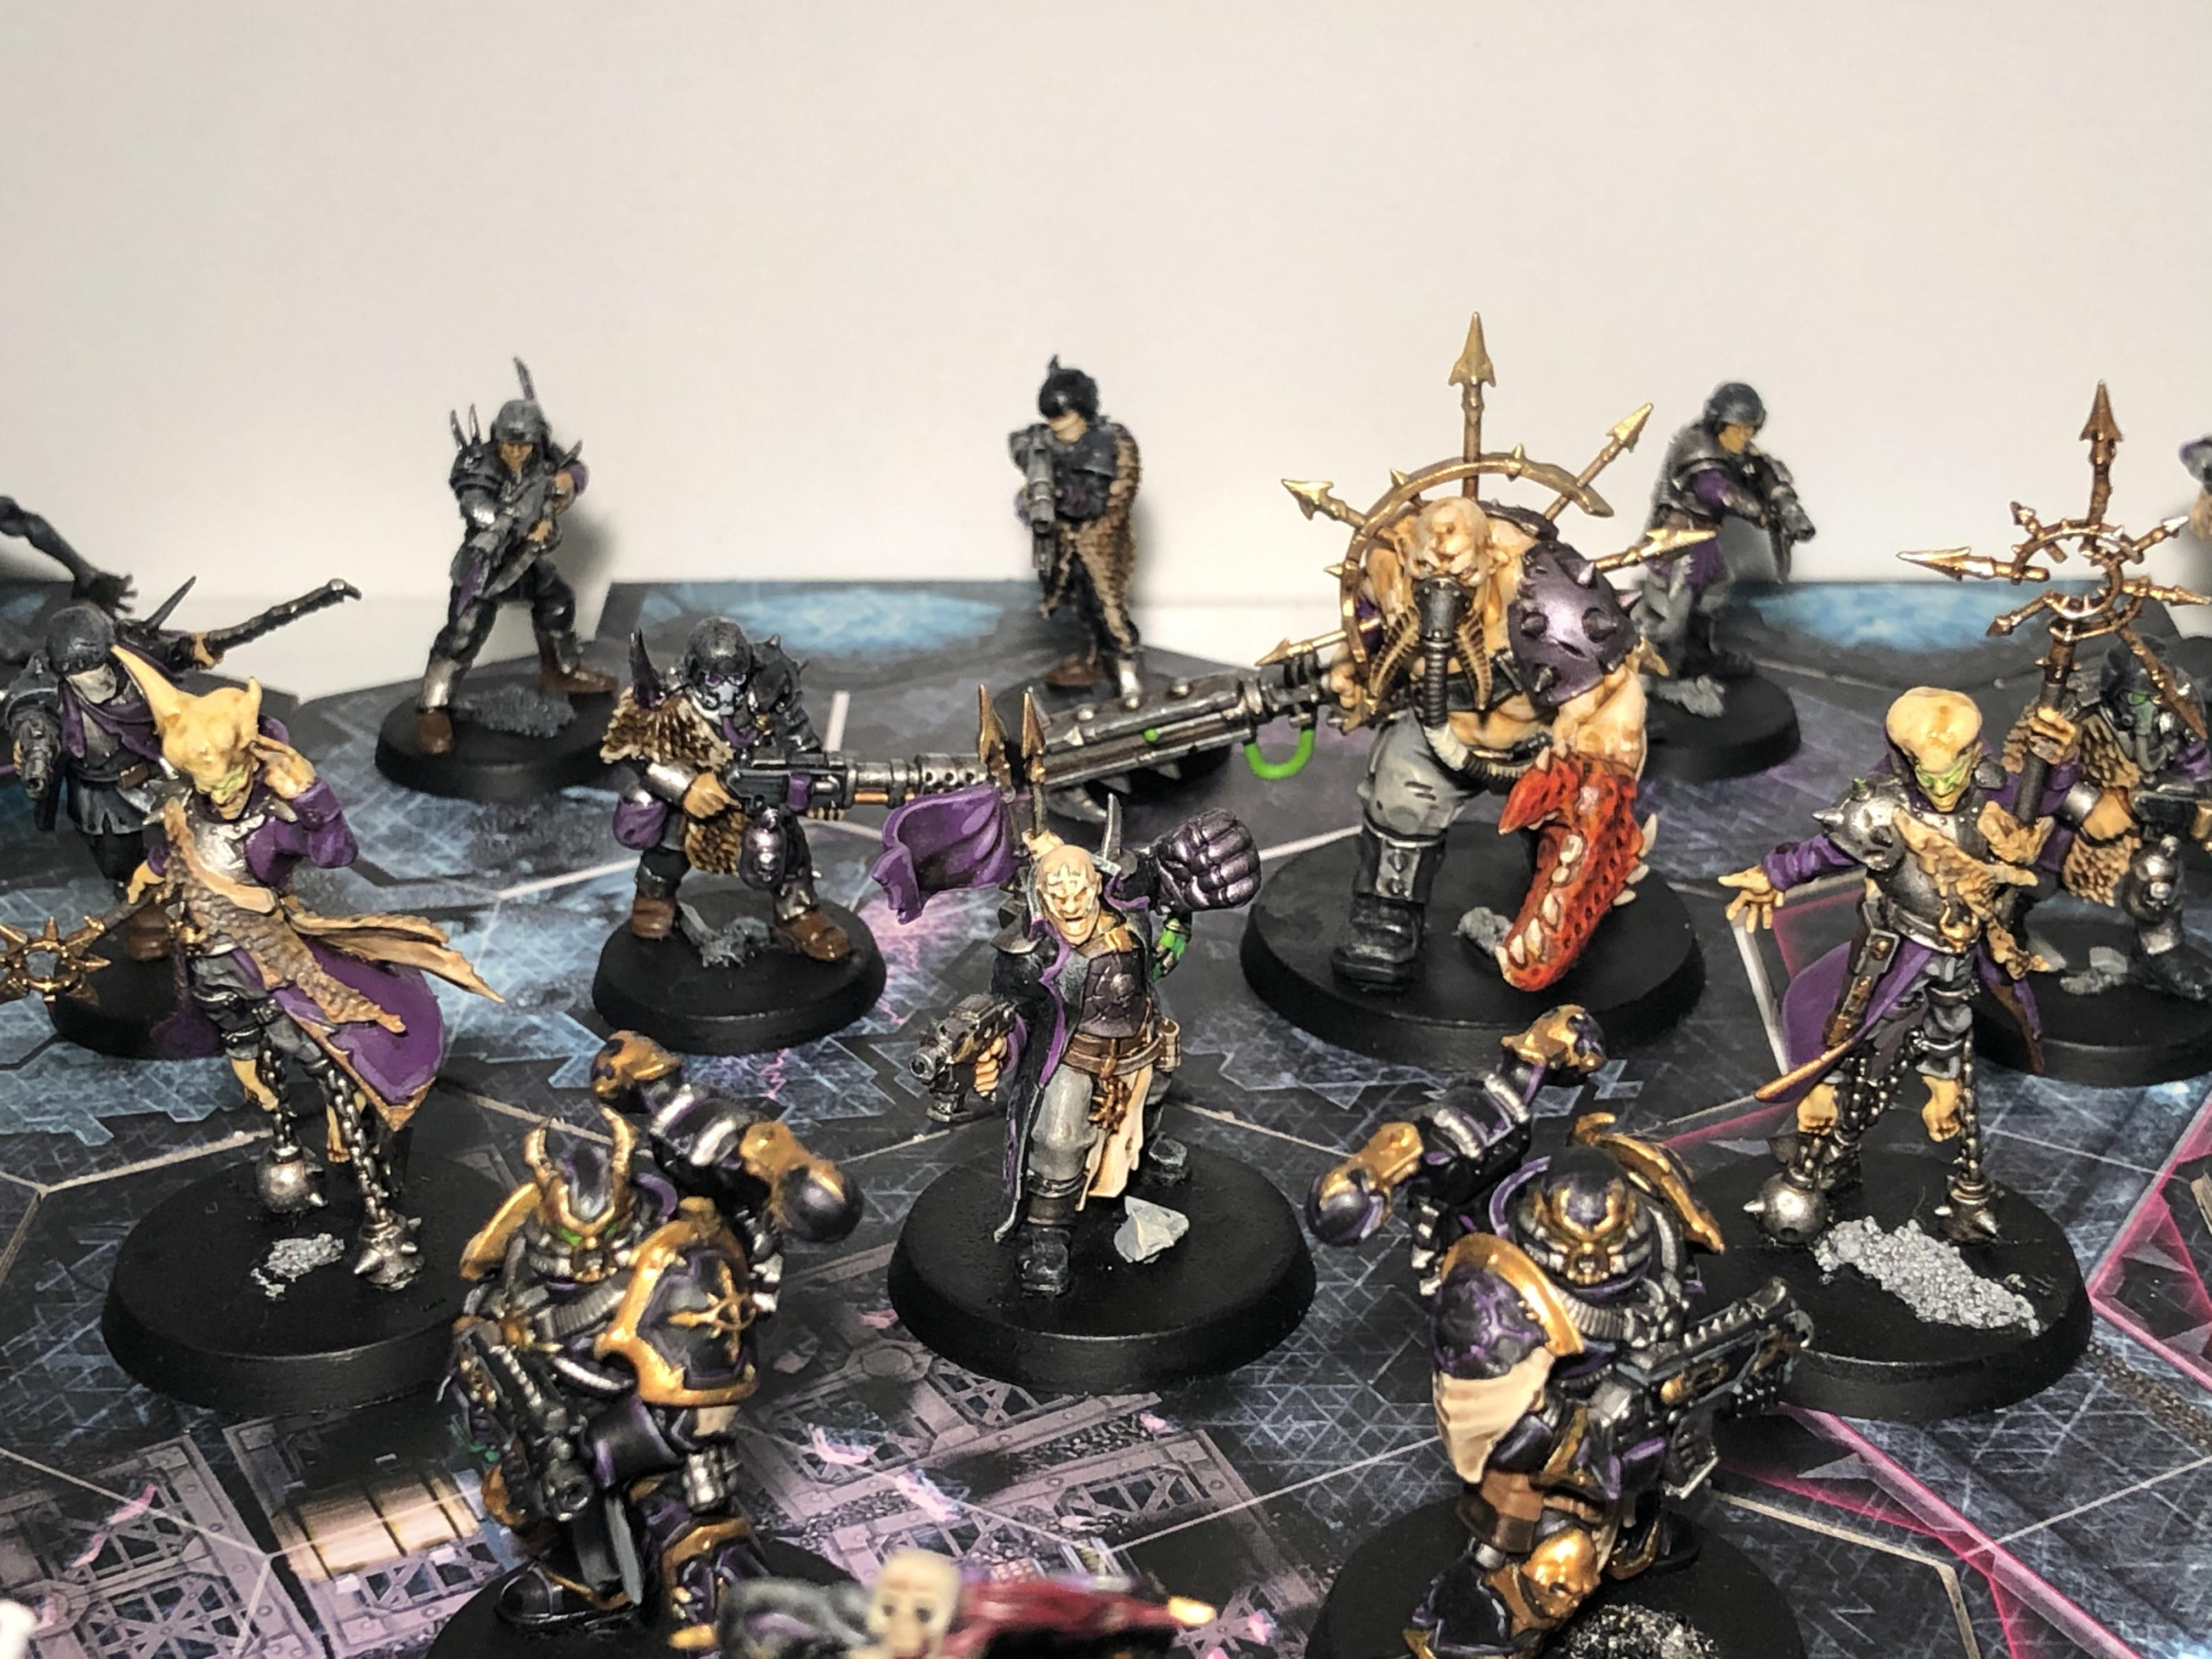 Blackstone Fortress, Chaos Space Marines, Servants Of The Abyss, Traitor Command, Traitor Guard, Warhammer 40,000